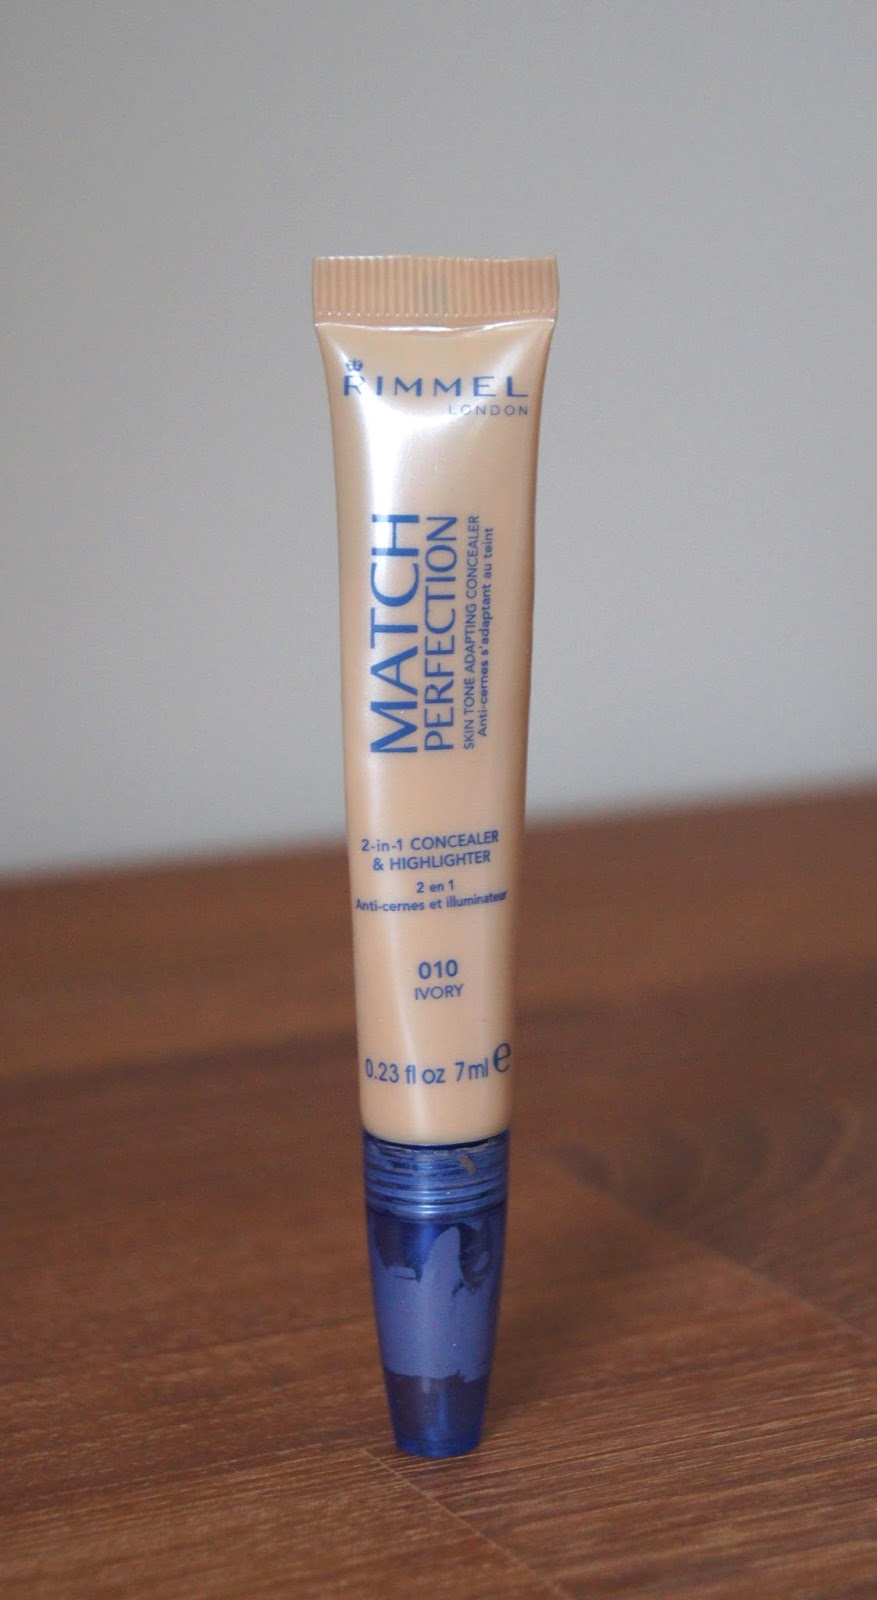 rimmel match perfection 2 in 1 concealer highlighter review